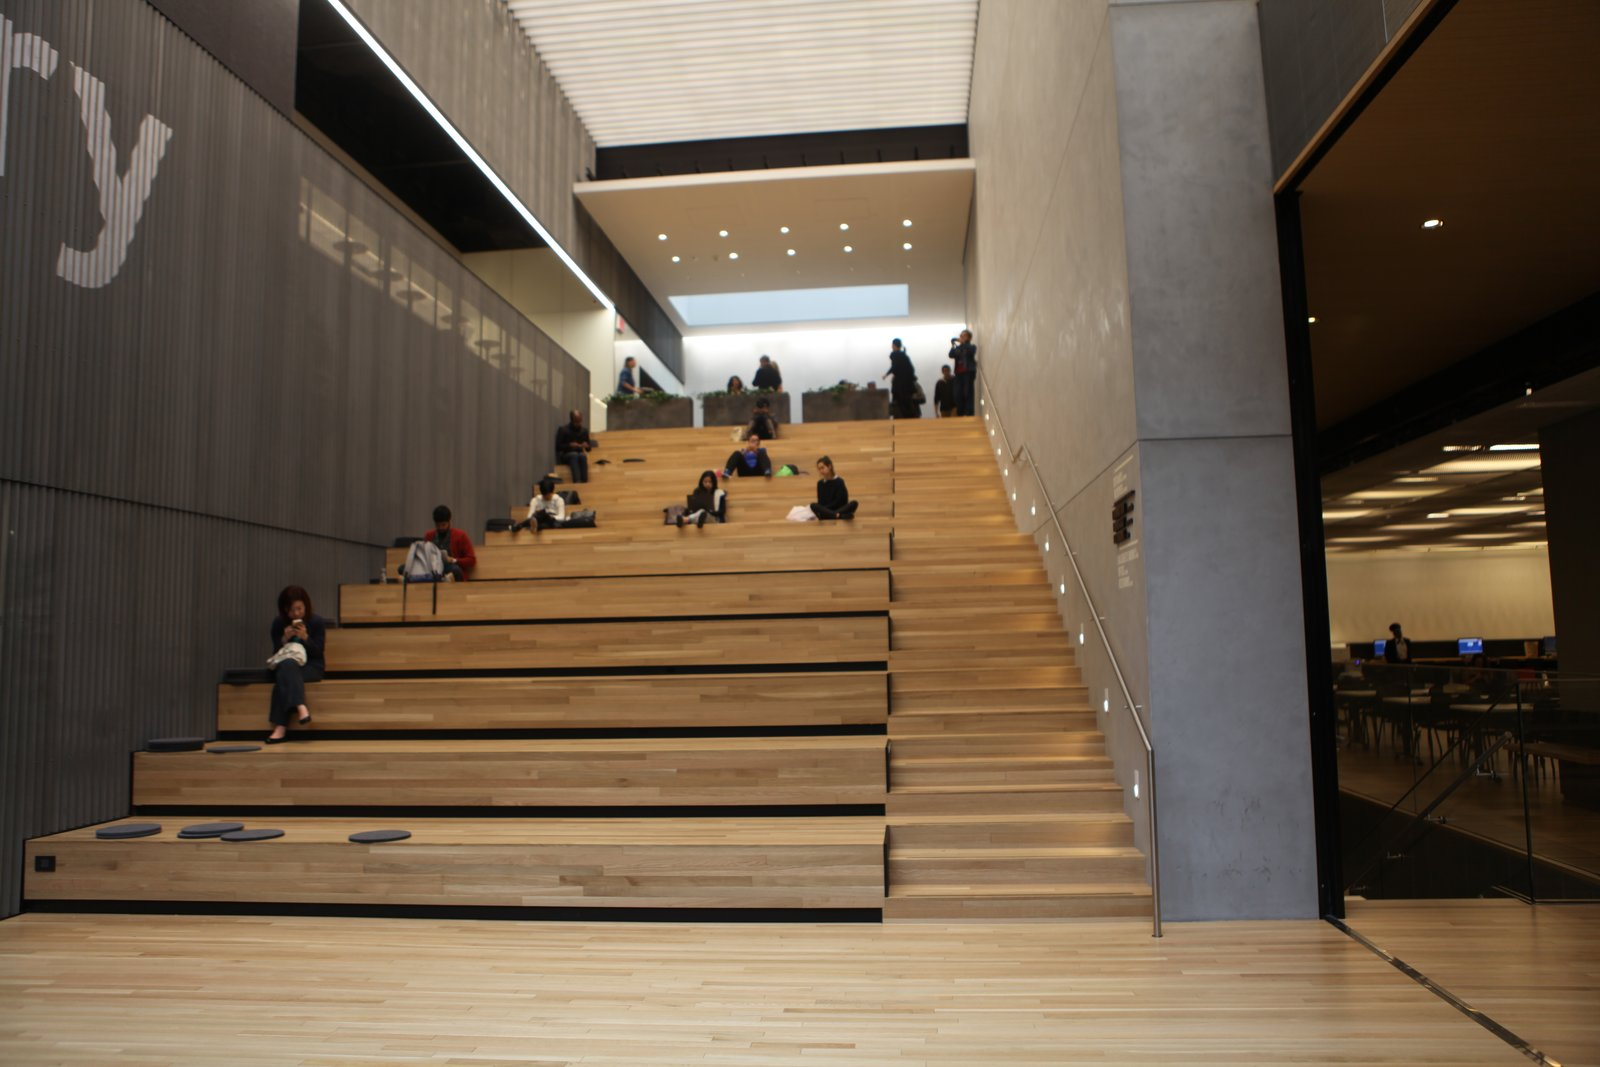 Archtober 2016 Building of the Day #13: New York Public Library – 53rd Street Branch